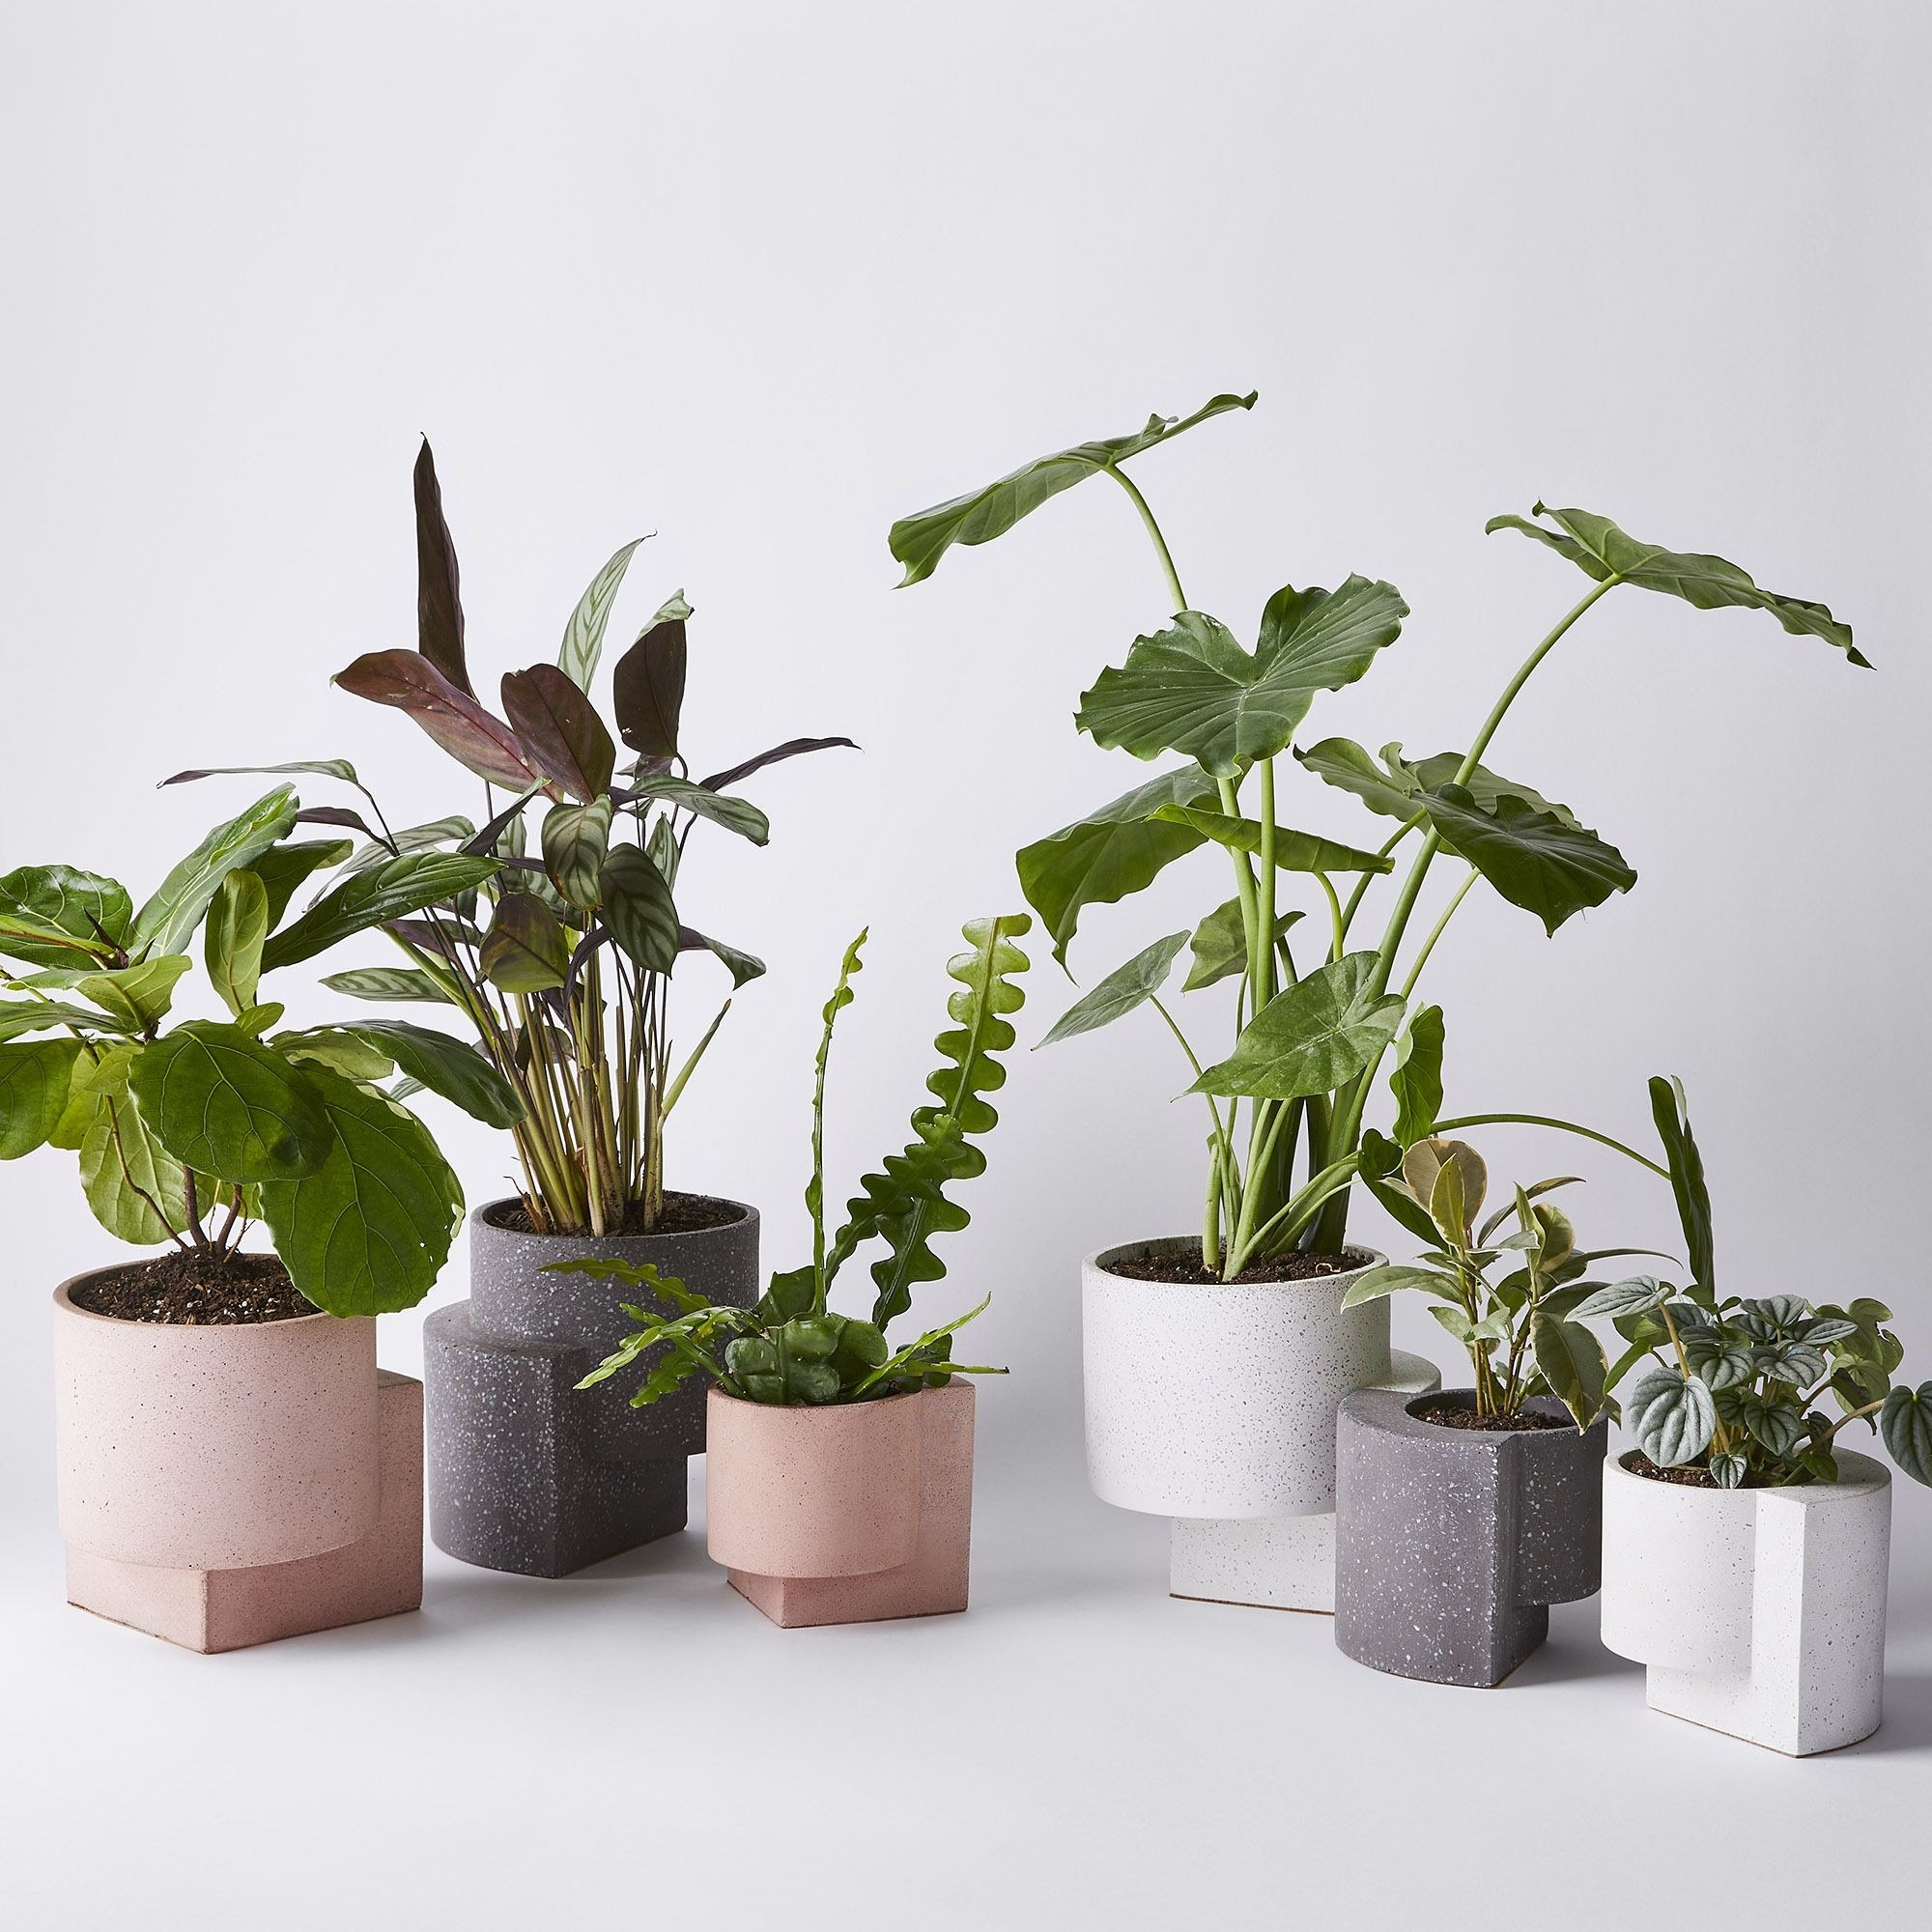 several classic vases with right angle base details. they are different sizes and colors and holding different plants.